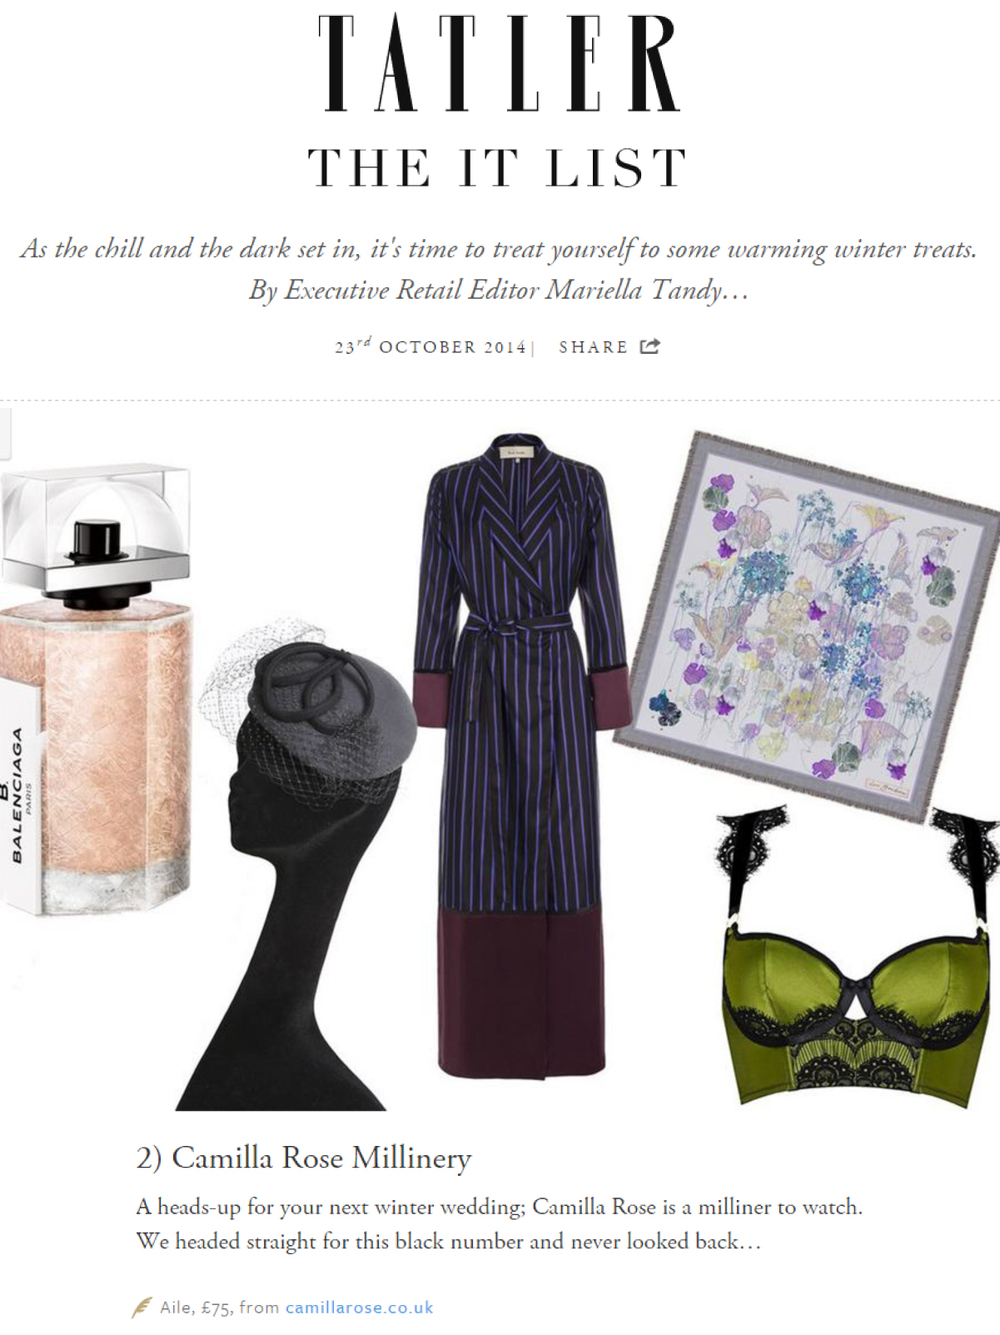 Tatler 'It List' - October 23rd 2014 (Aile Headpiece)